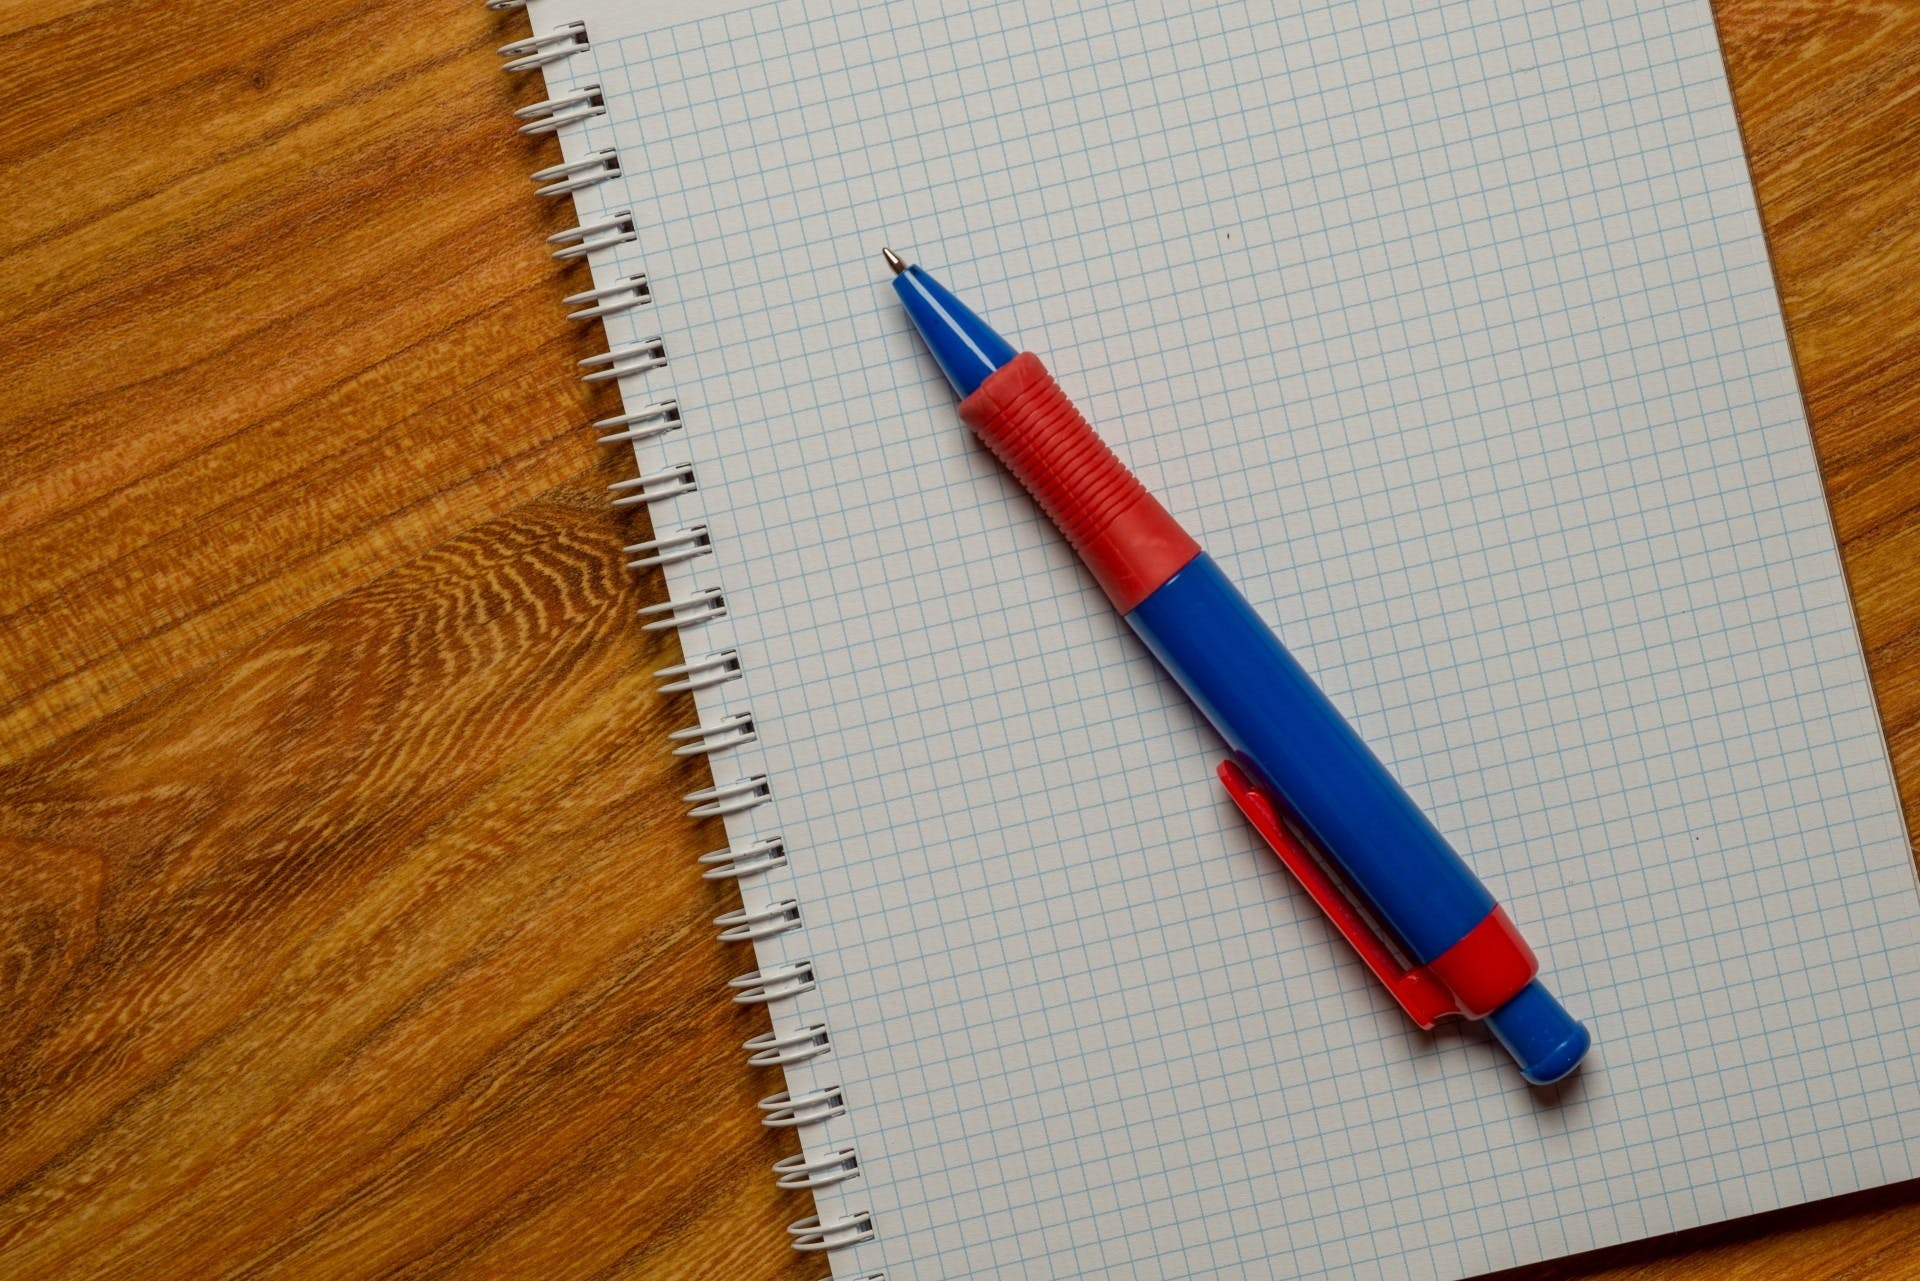 Retractable Pen on Graphing Paper